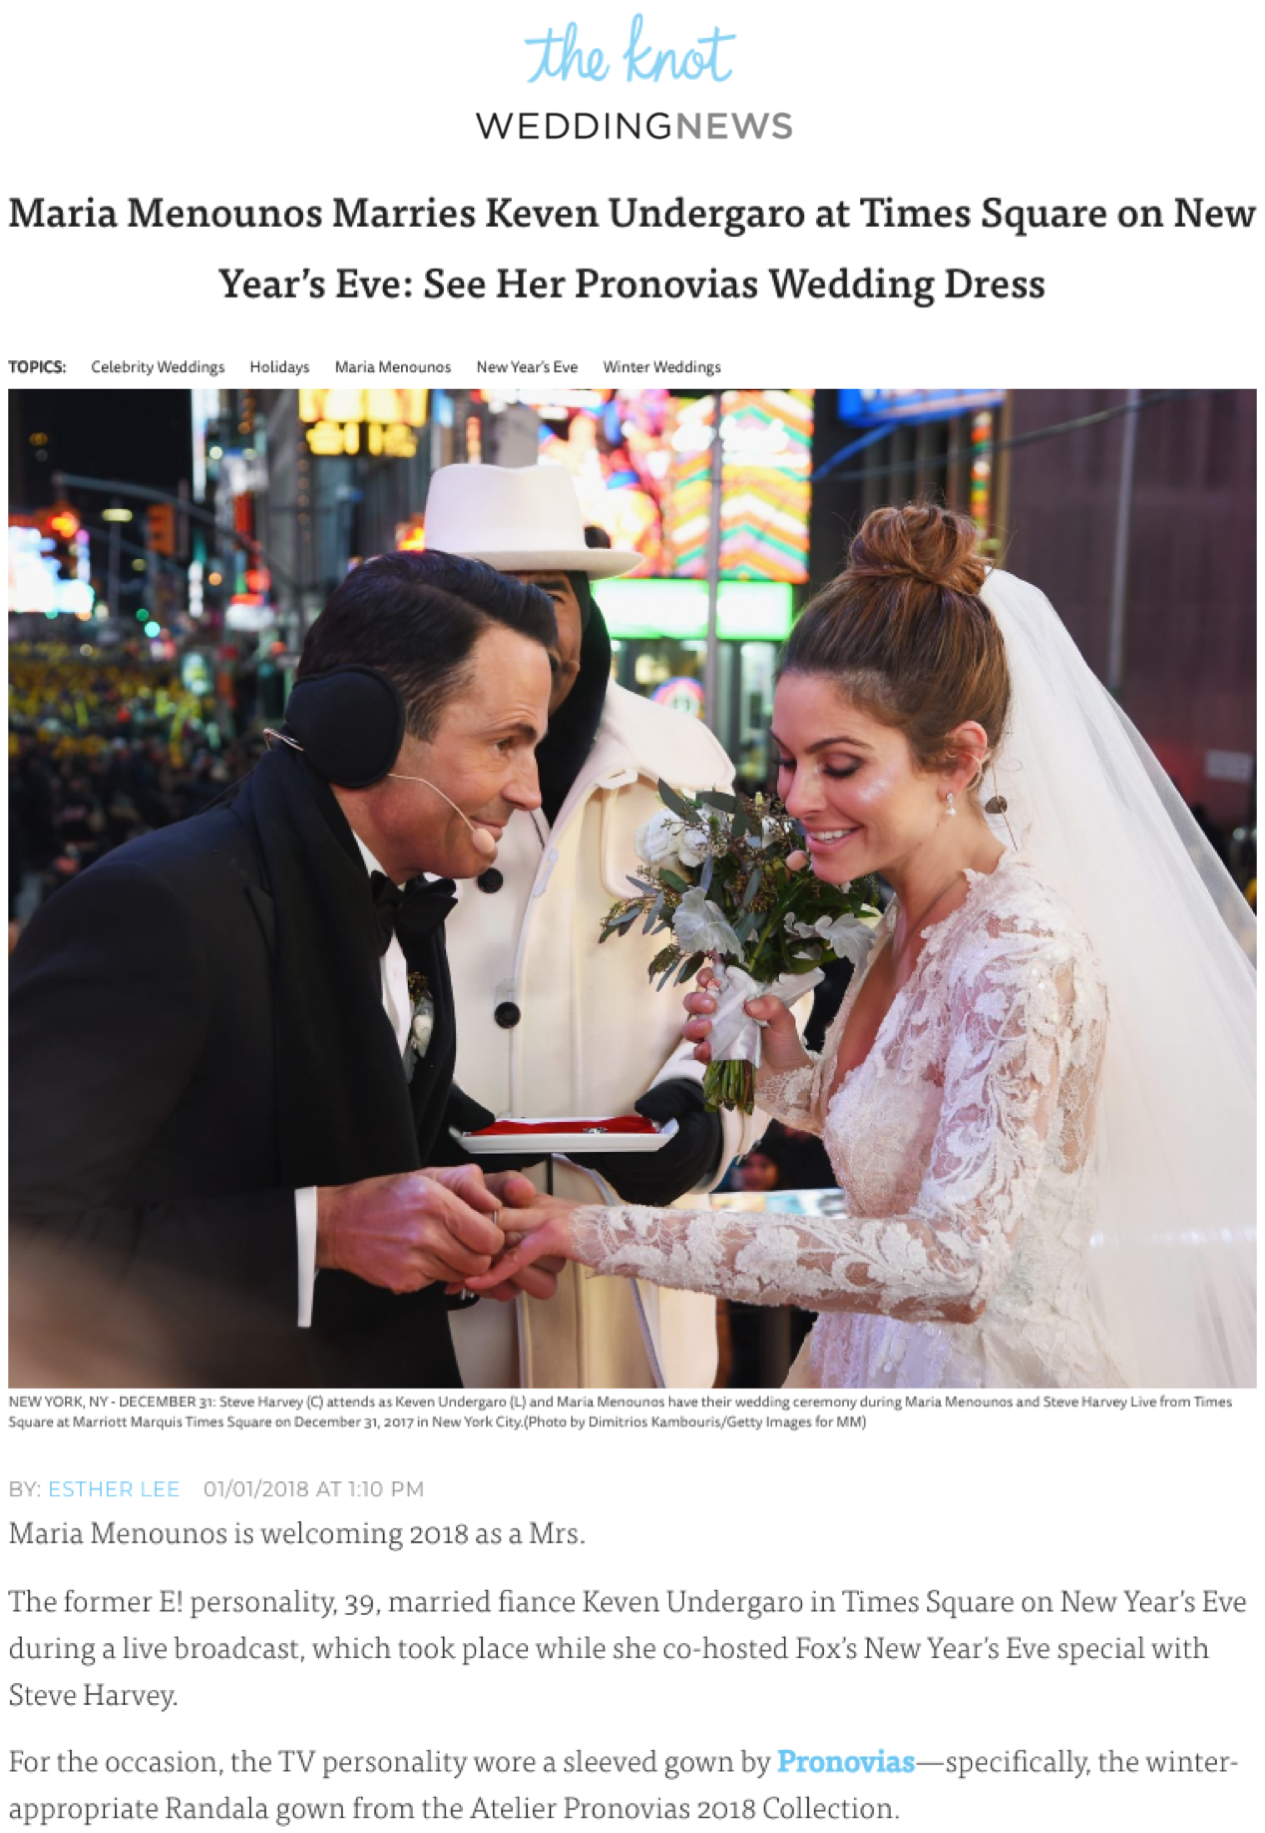 """Maria Menounos Marries Keven Undergaro at Times Square on New Year's Eve"", The Knot"